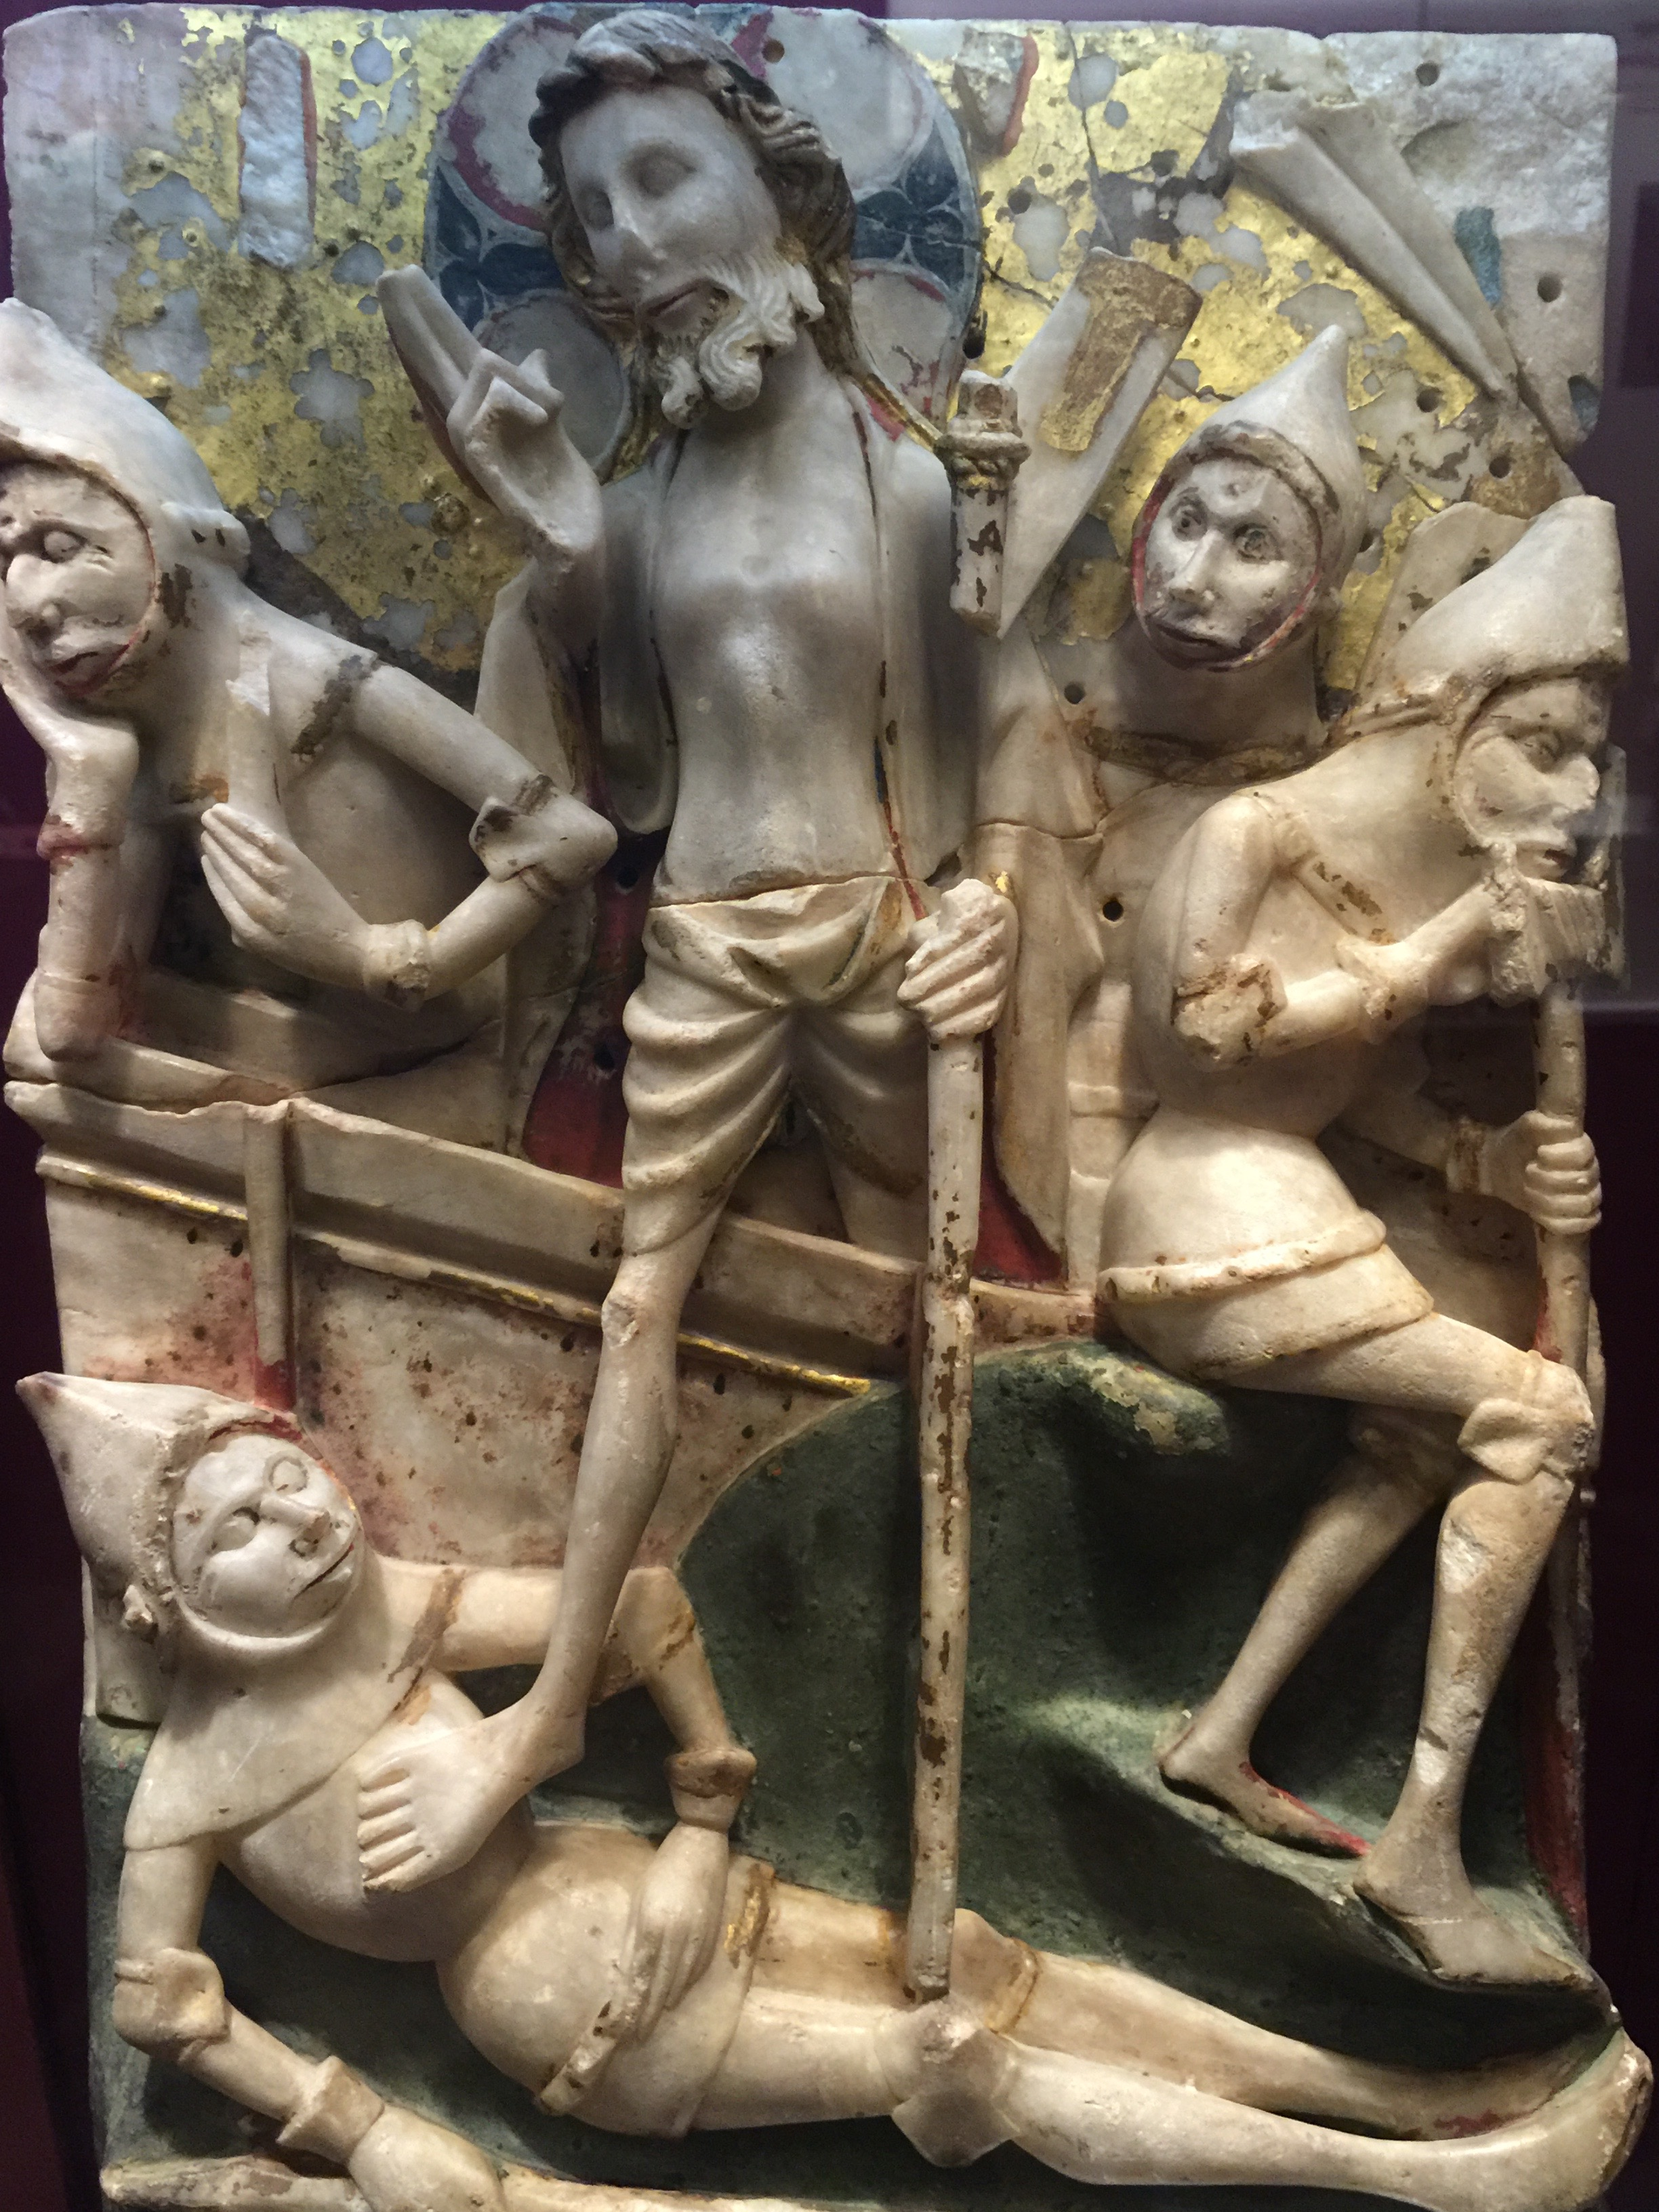 An English alabaster carving depicting the resurrection (15th C.)